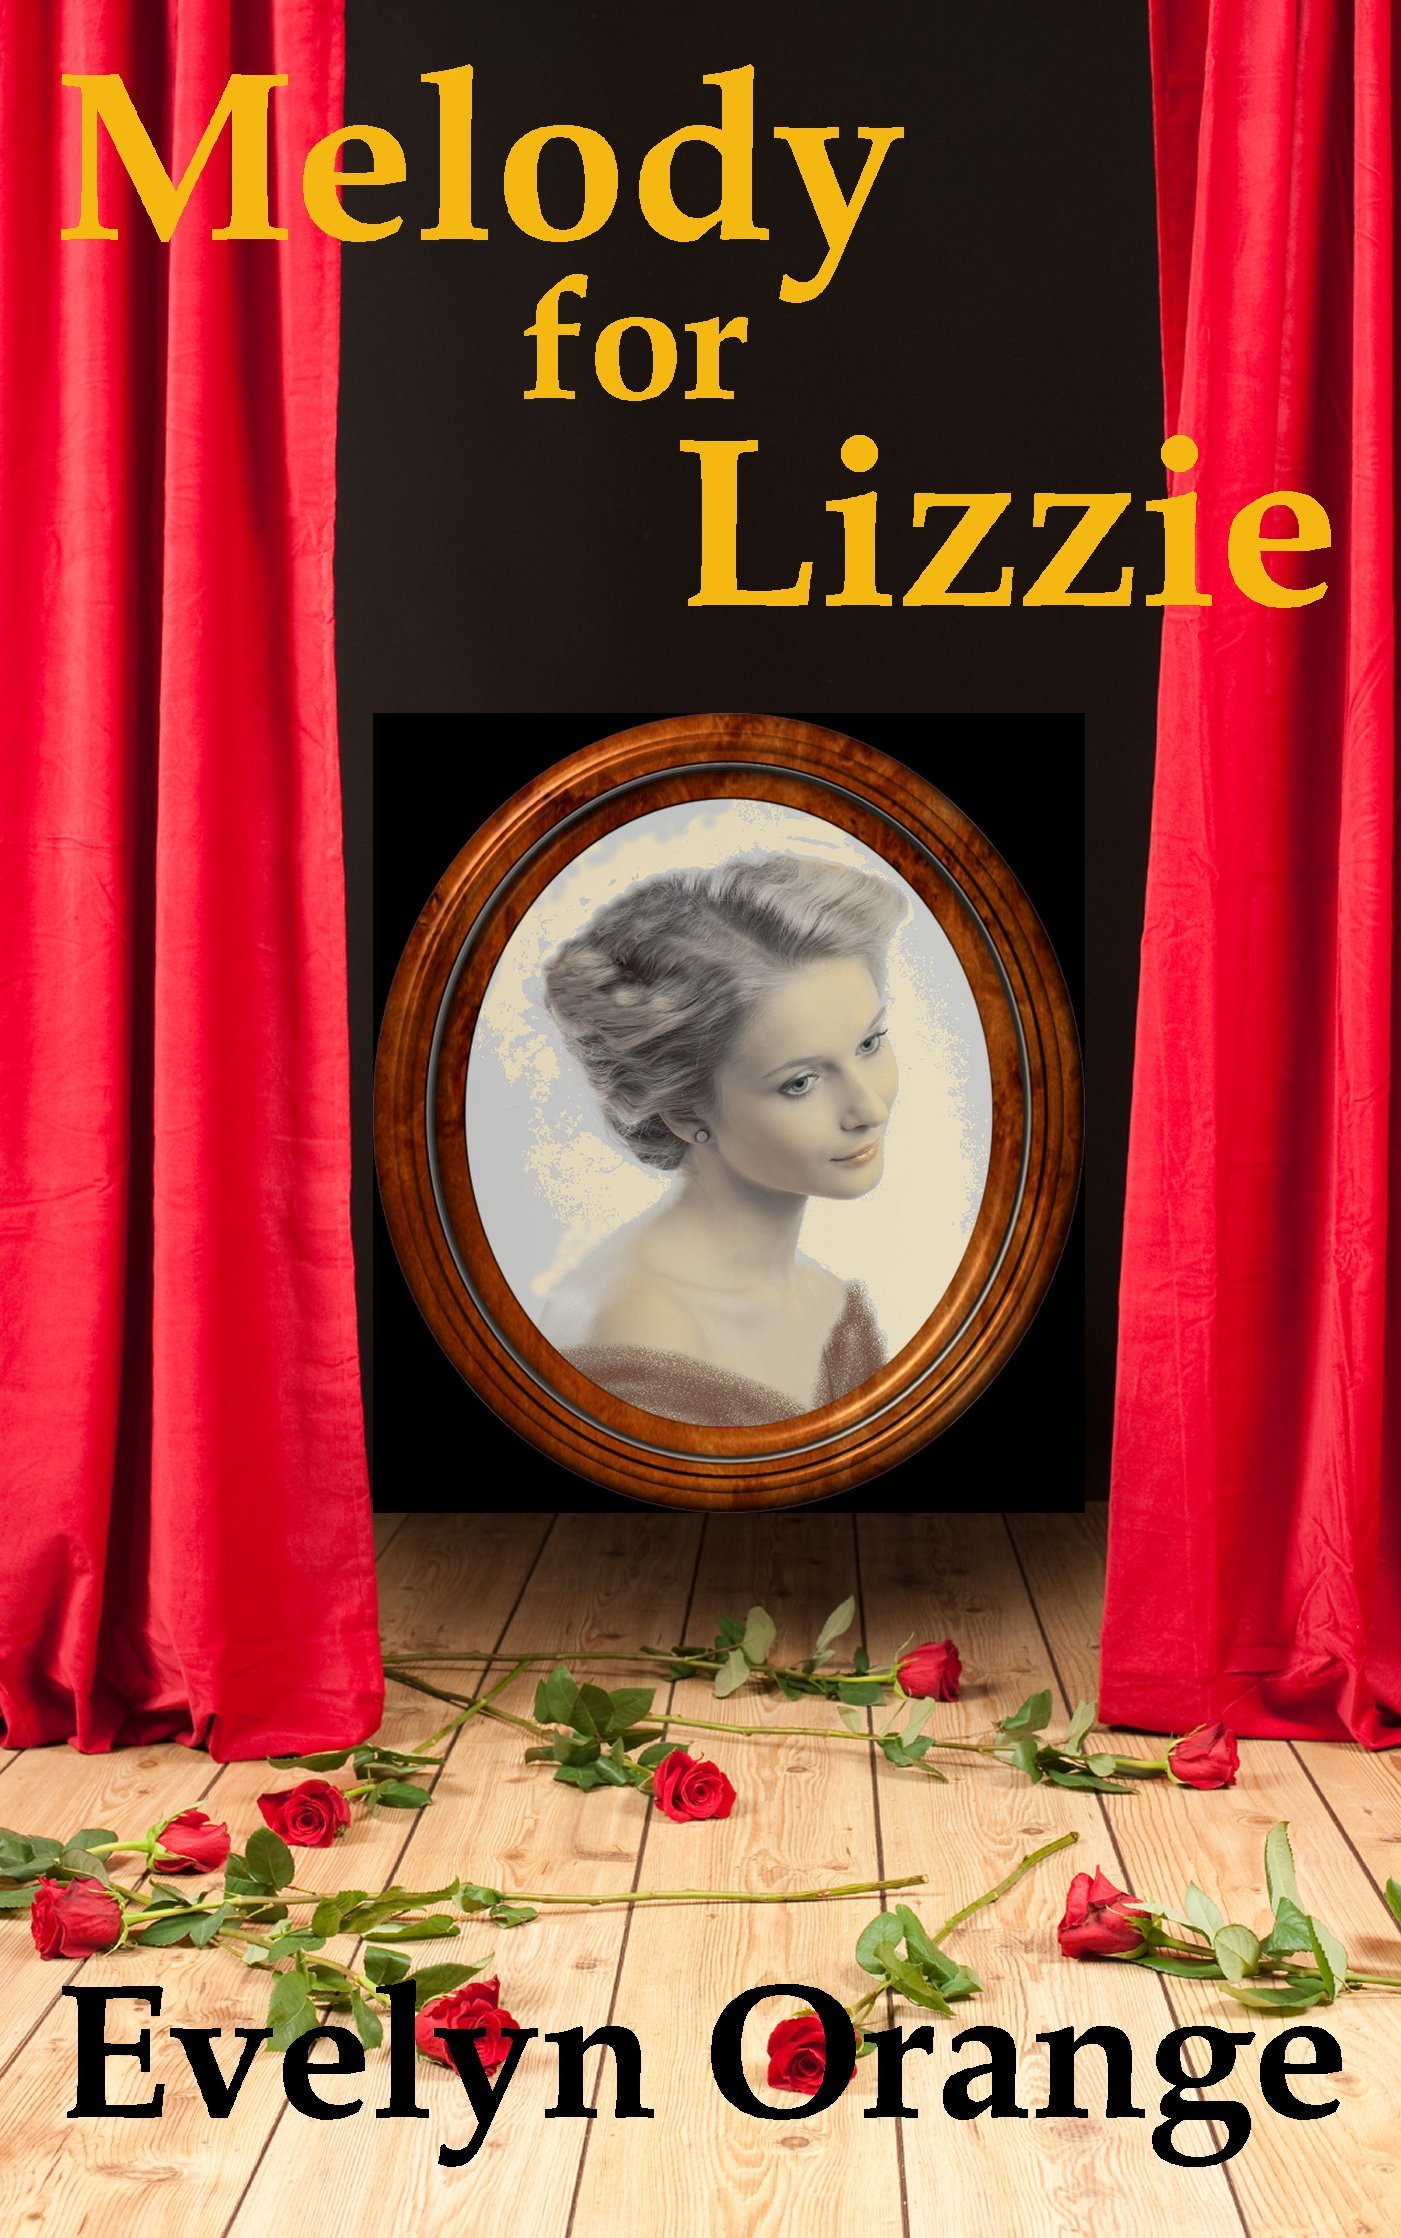 Melody for Lizzie